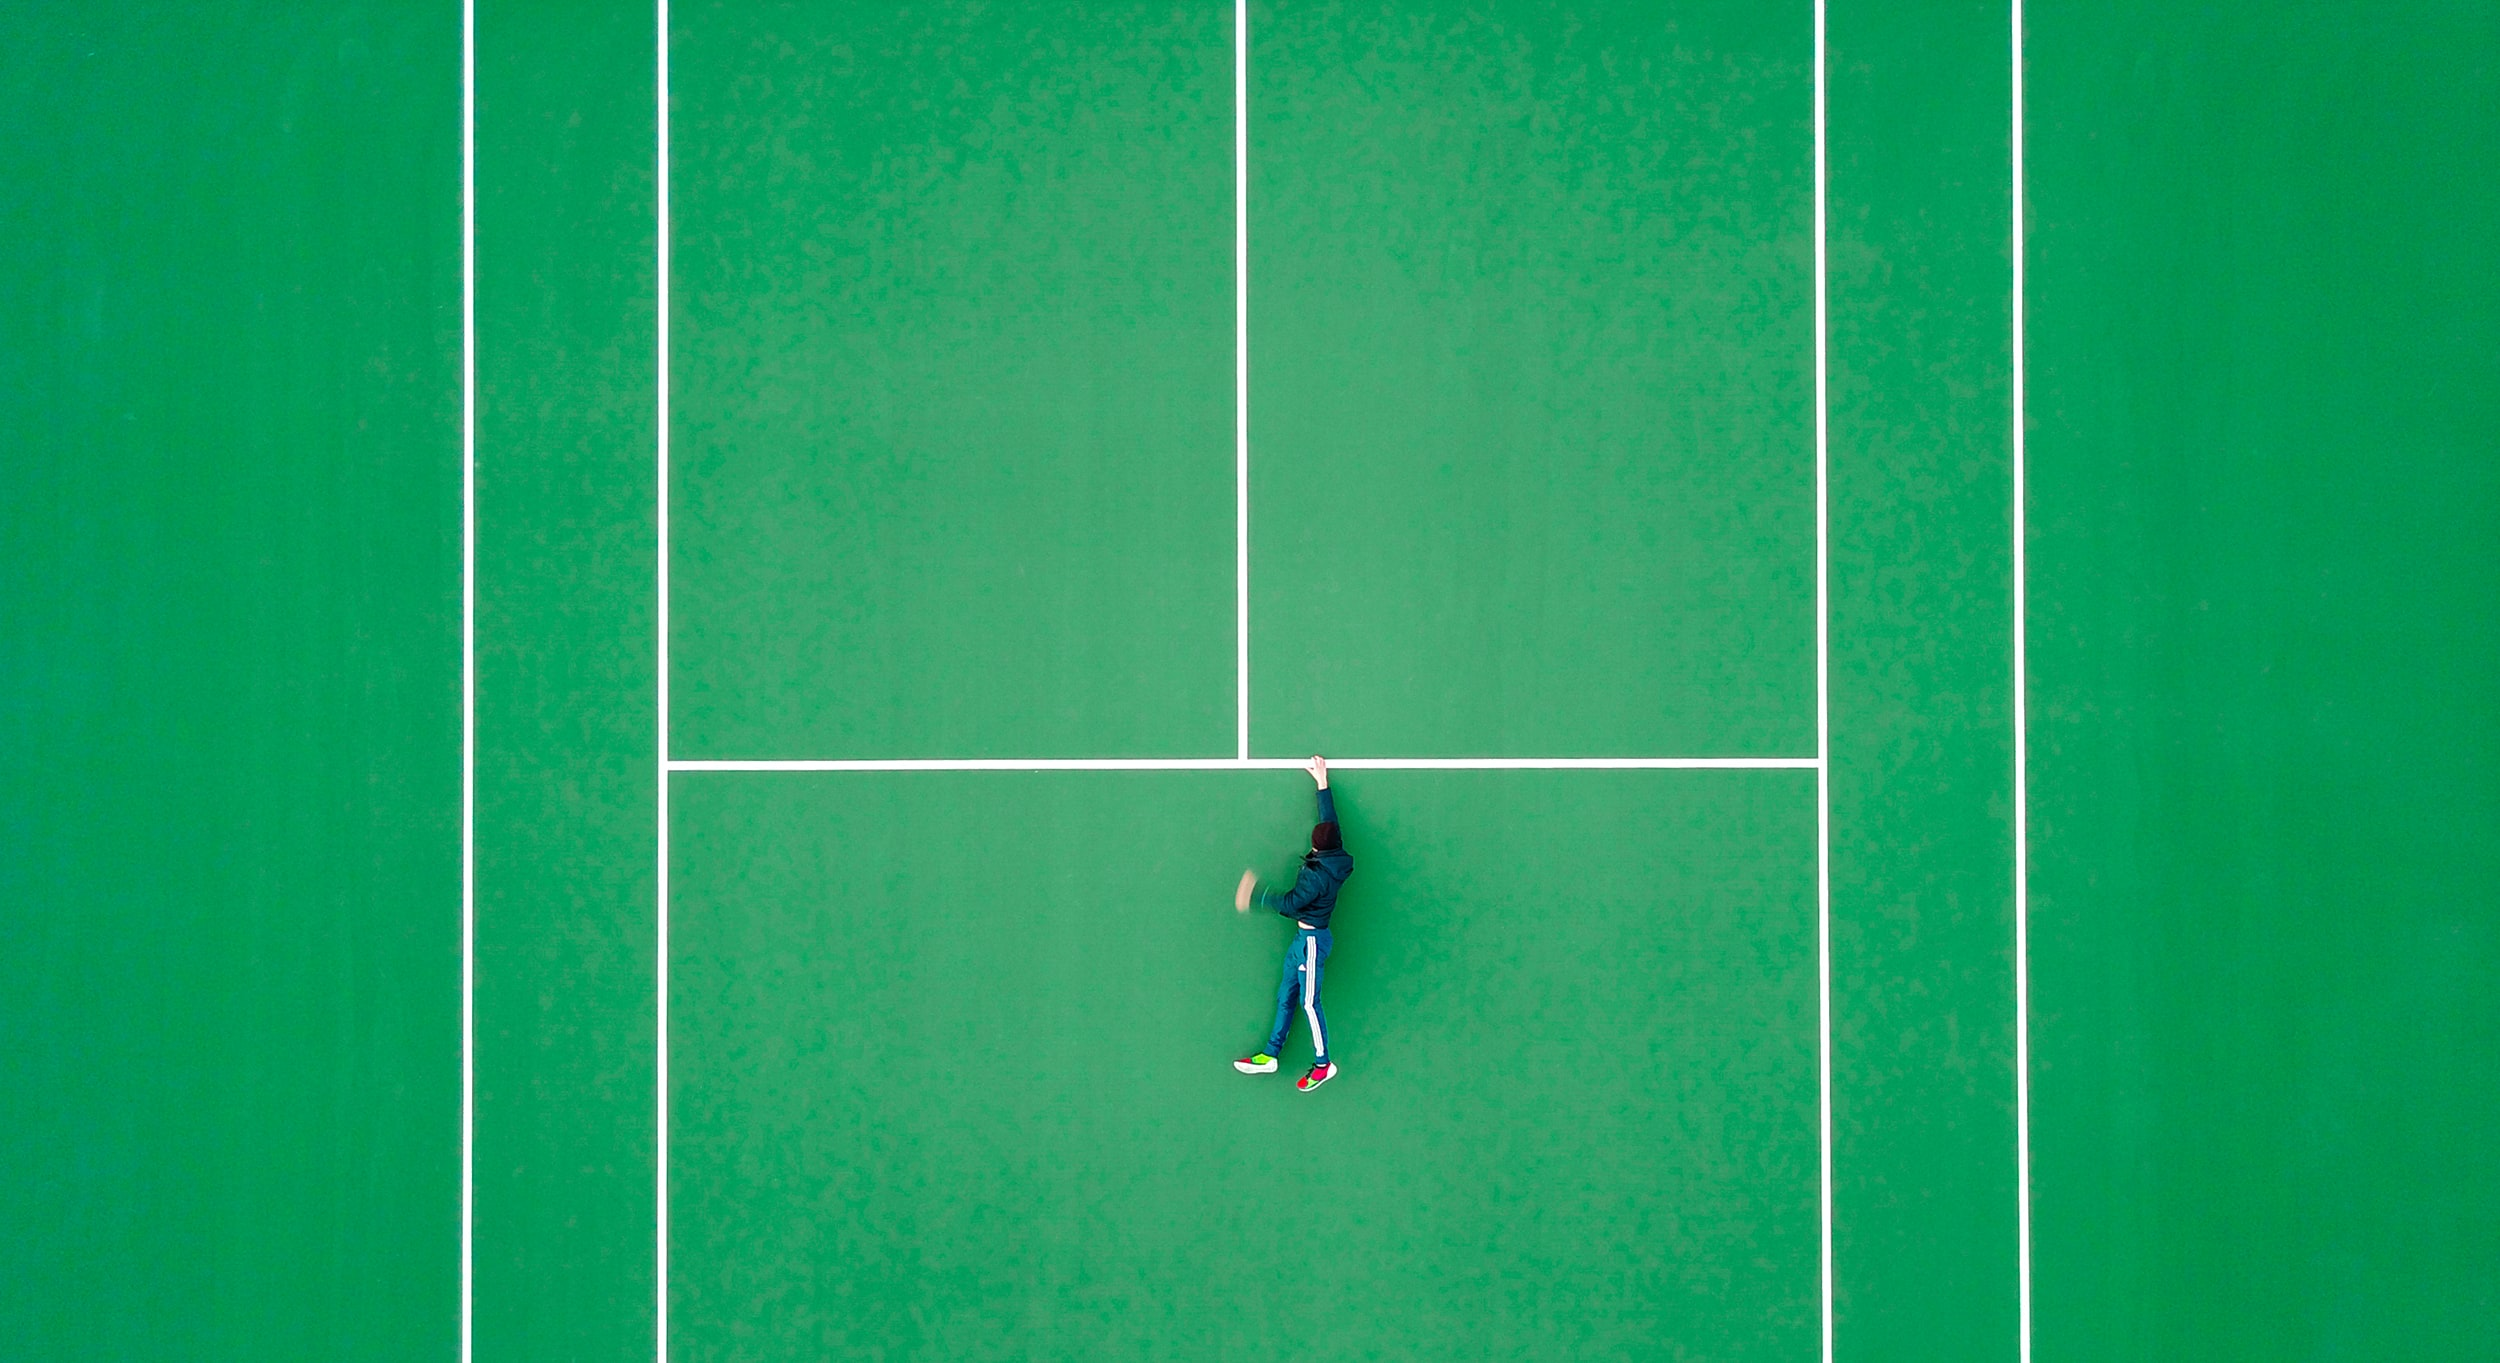 aerial photography of person lying on tennis court